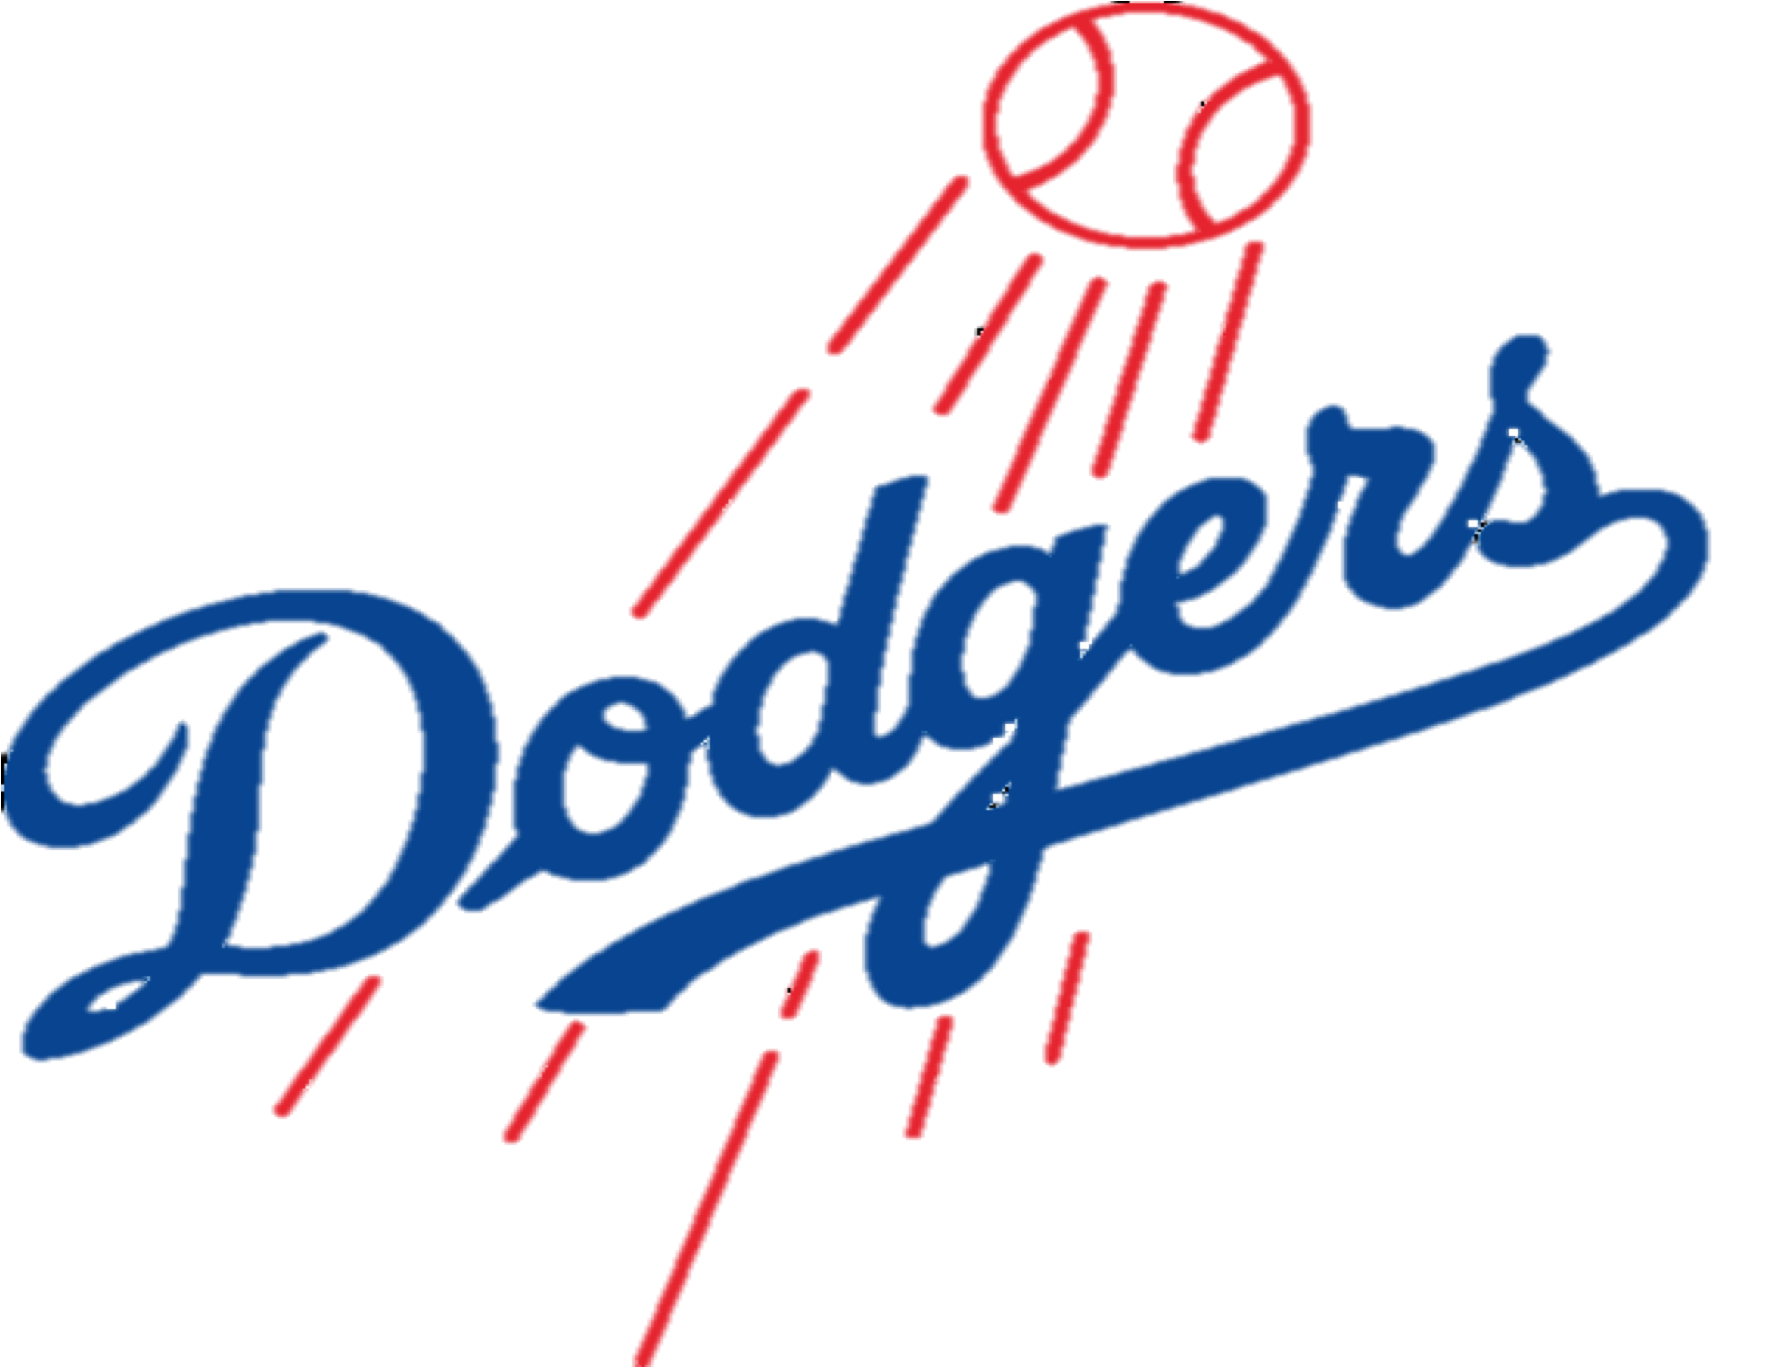 Dodgers svg. Los angeles logos png